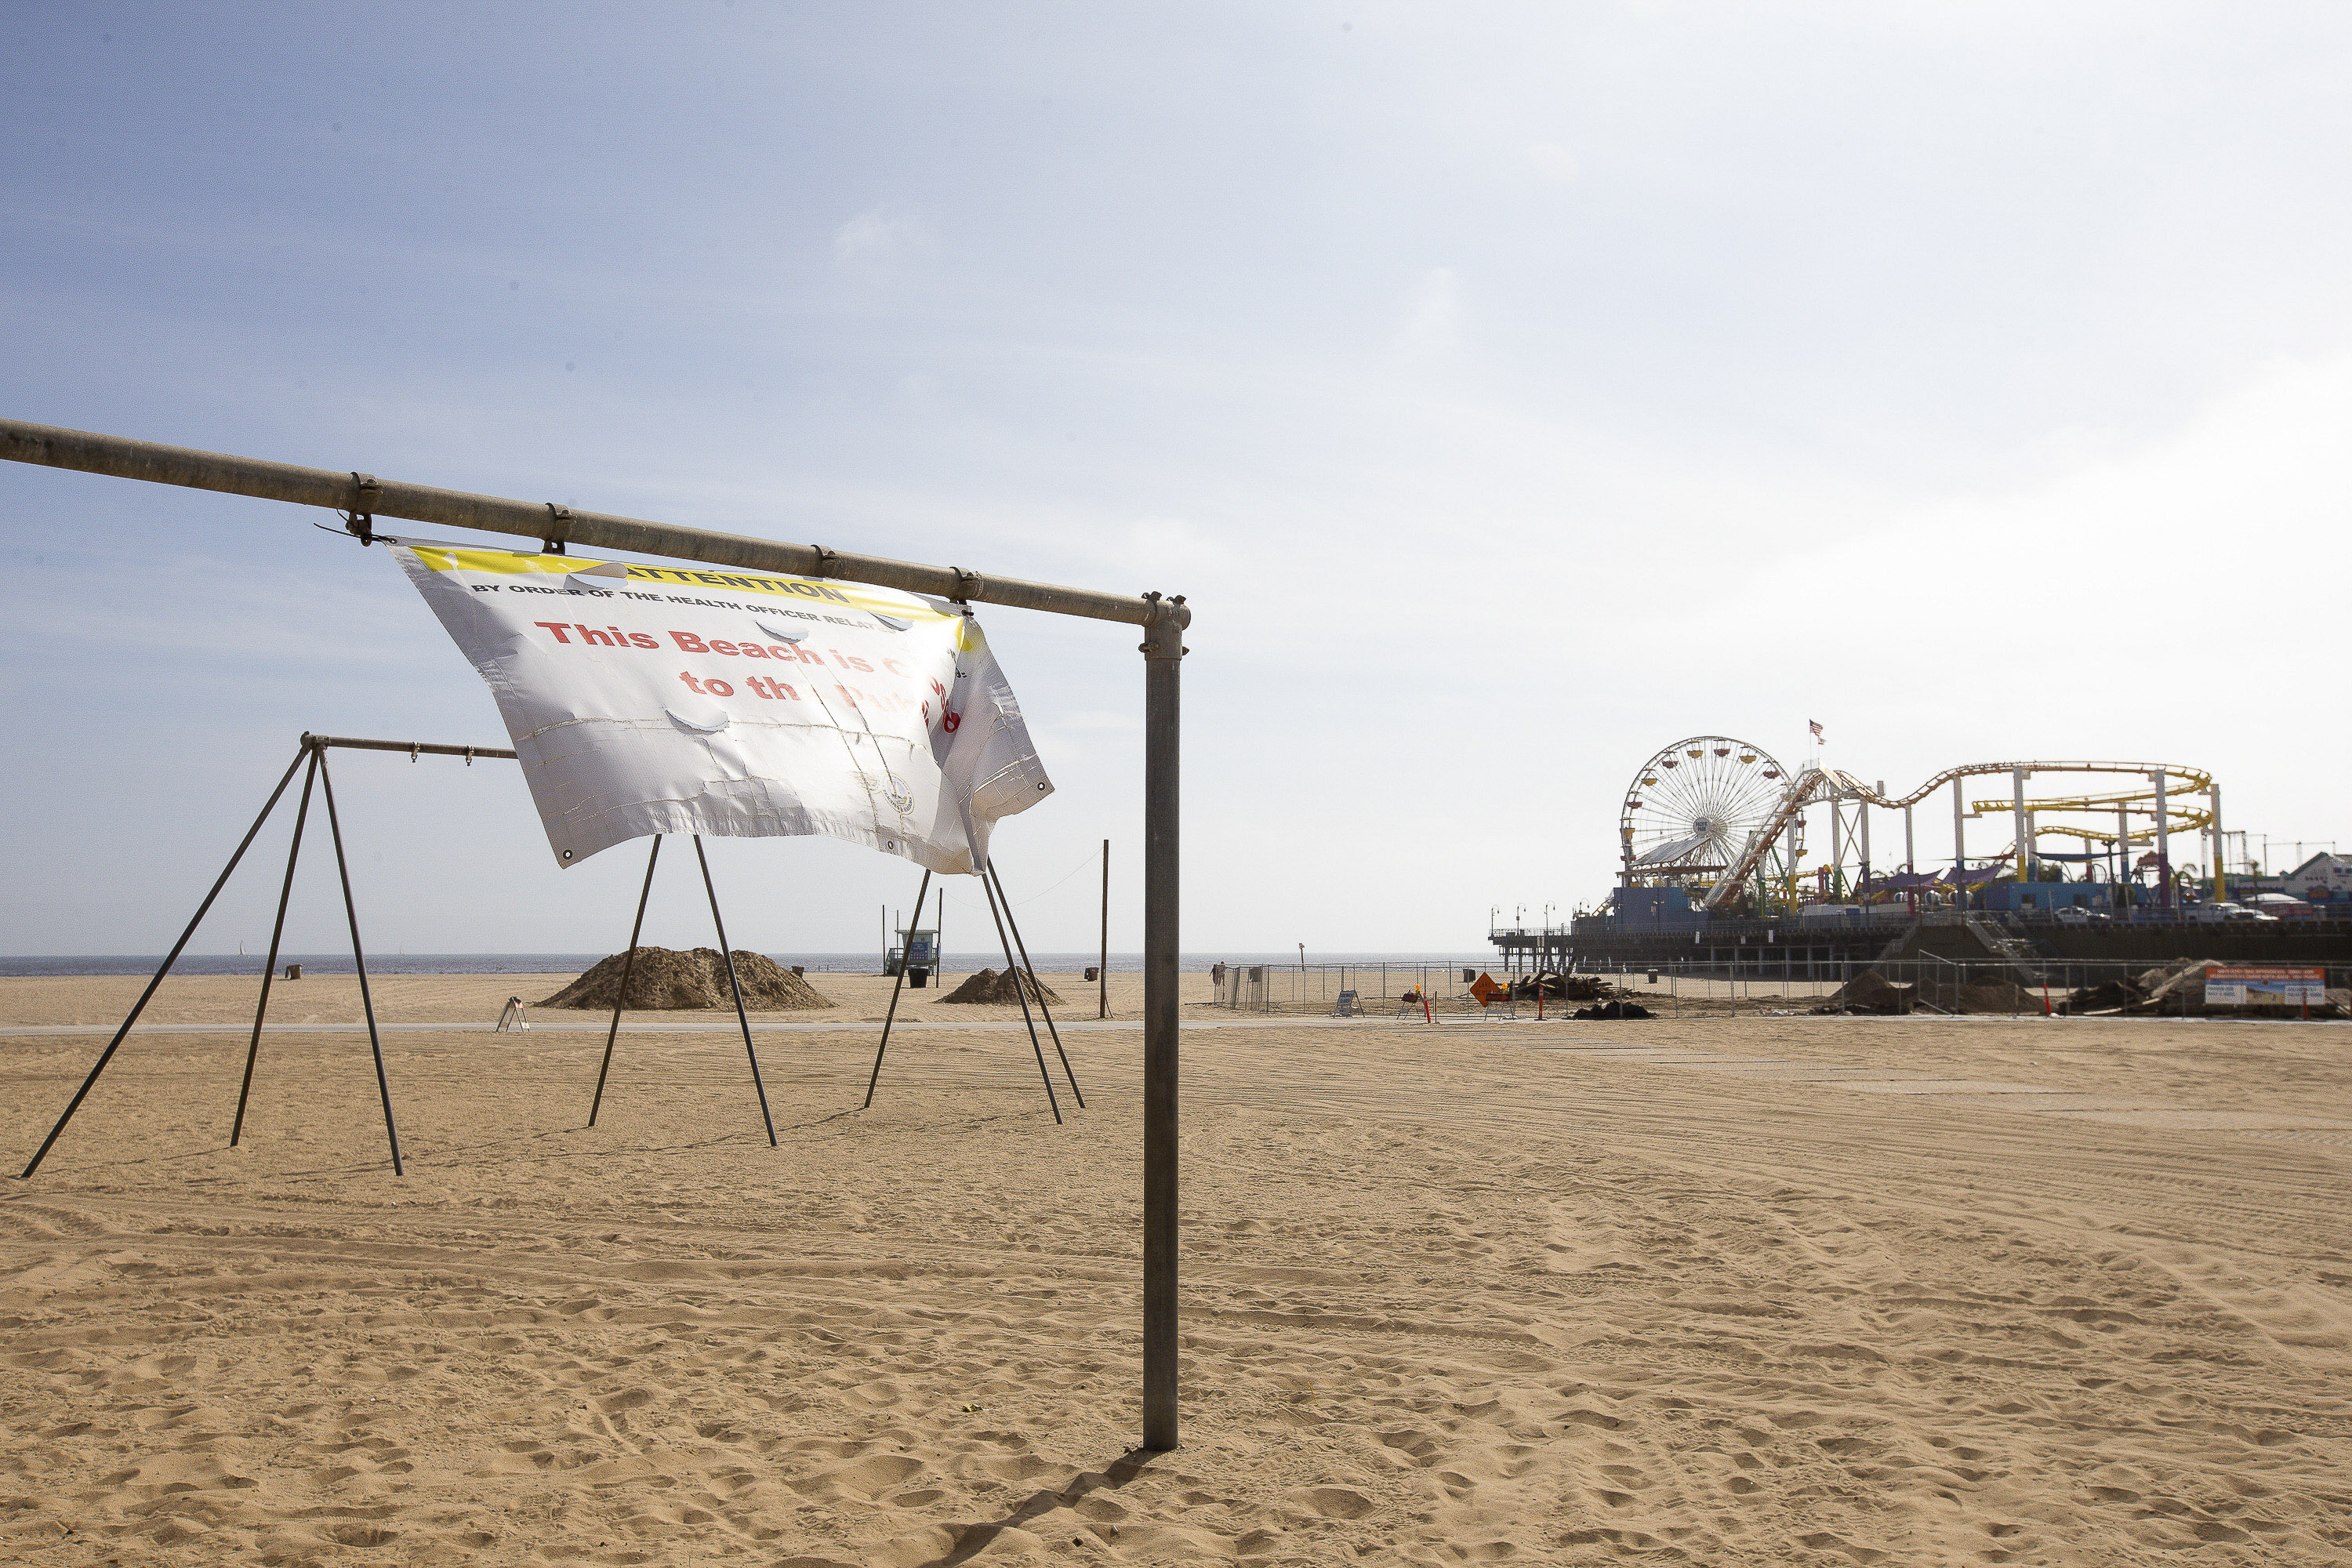 Santa Monica pier, beach and walkways are still closed due to COVID-19, May 8, 2020. Photos by Lisa Hornak for CalMatters.